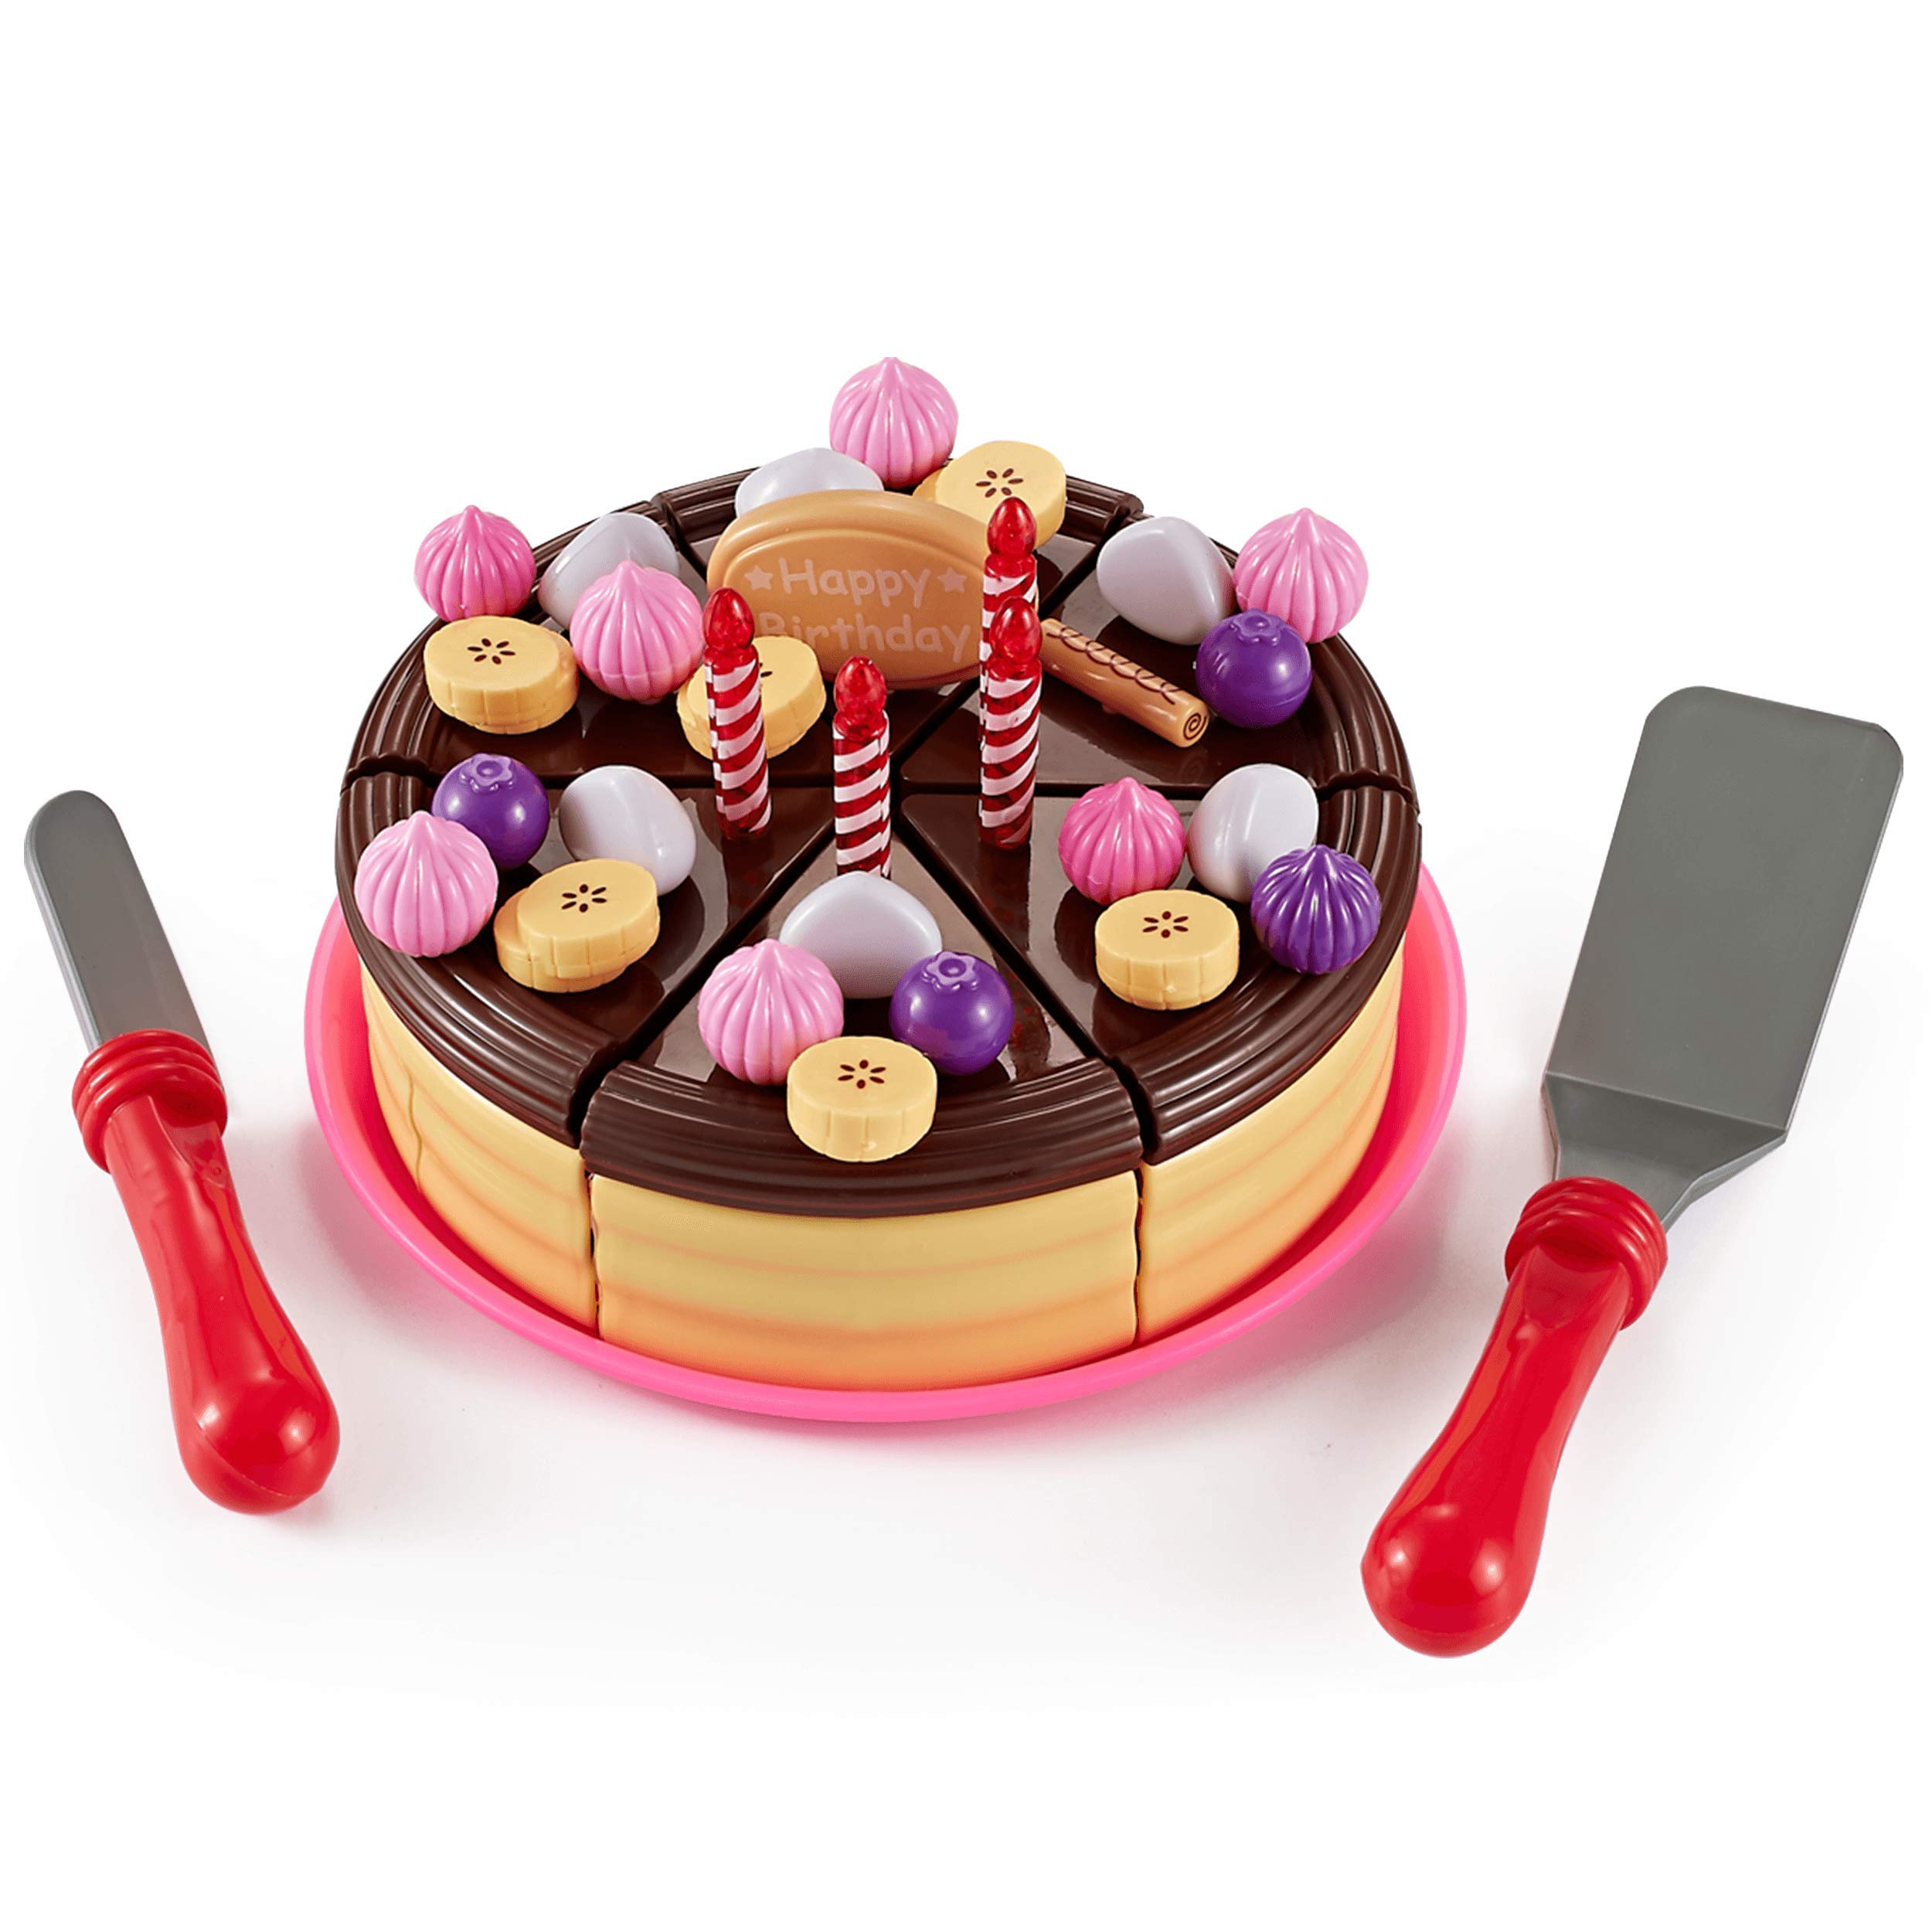 Think Gizmos Play Party Cake TG713 - Party Cake Play Set for Kids Aged 3 4 5 6 by Think Gizmos